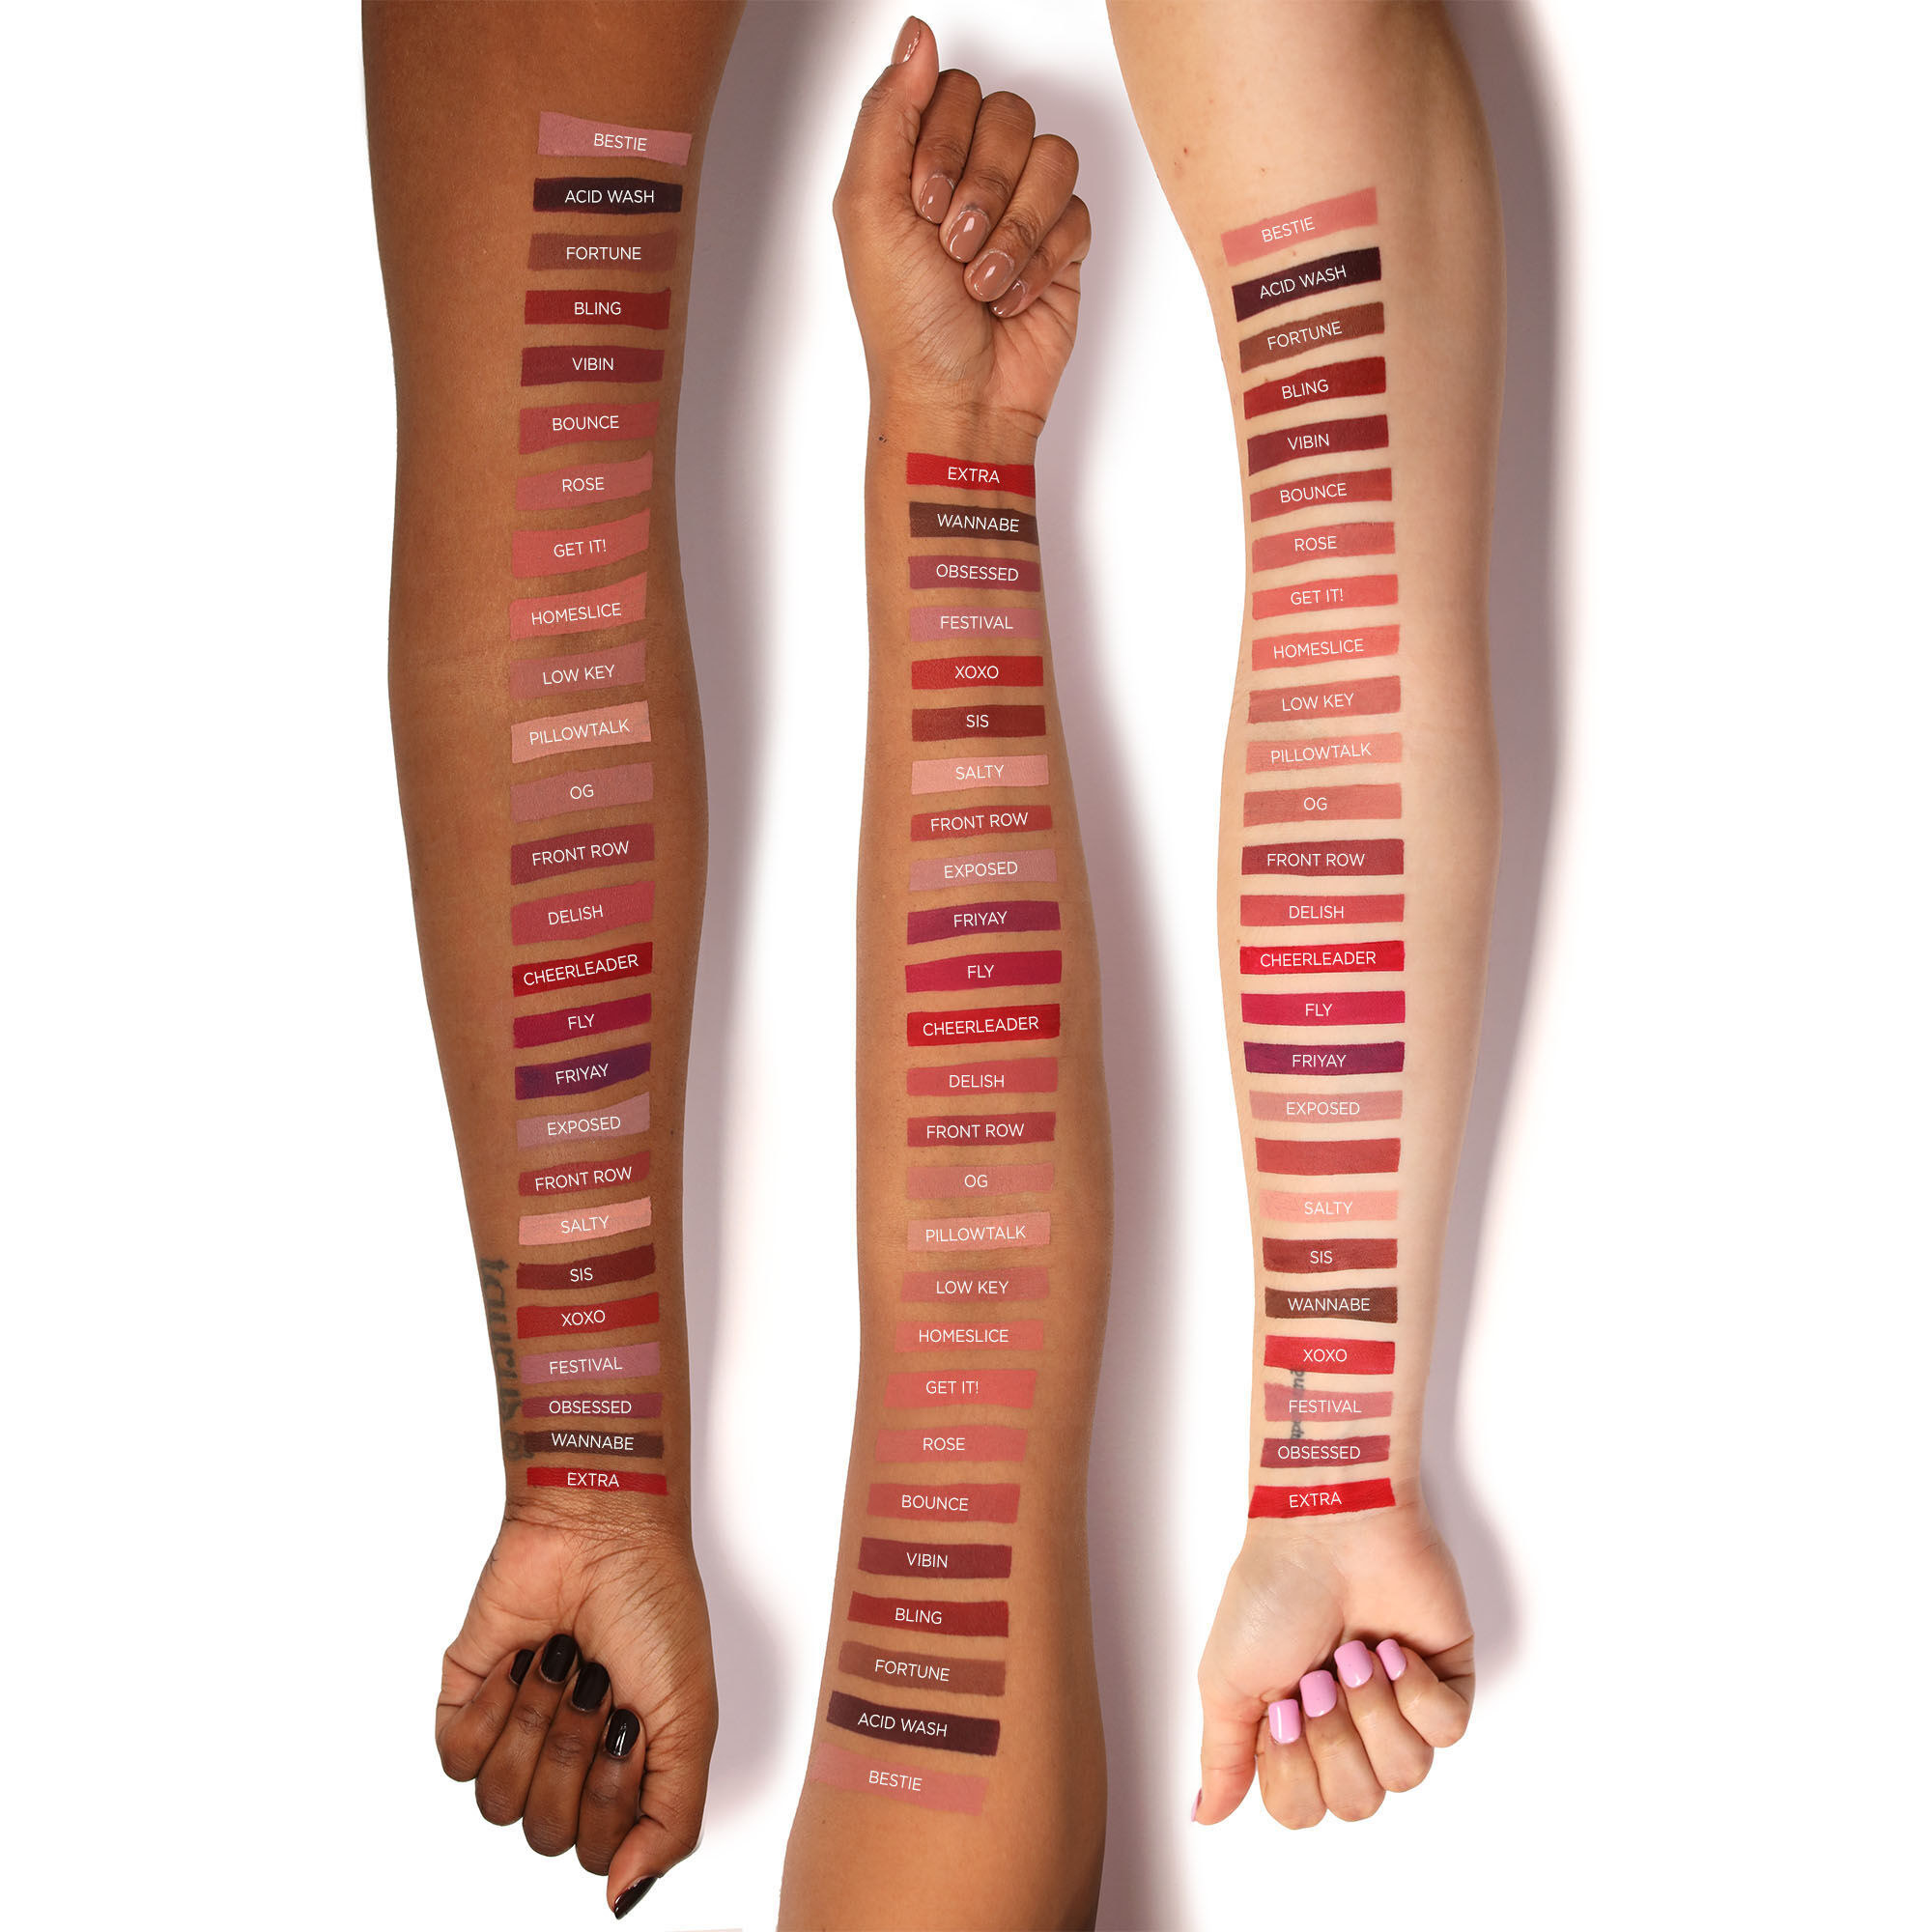 Swatches on forearms of three different skin tones